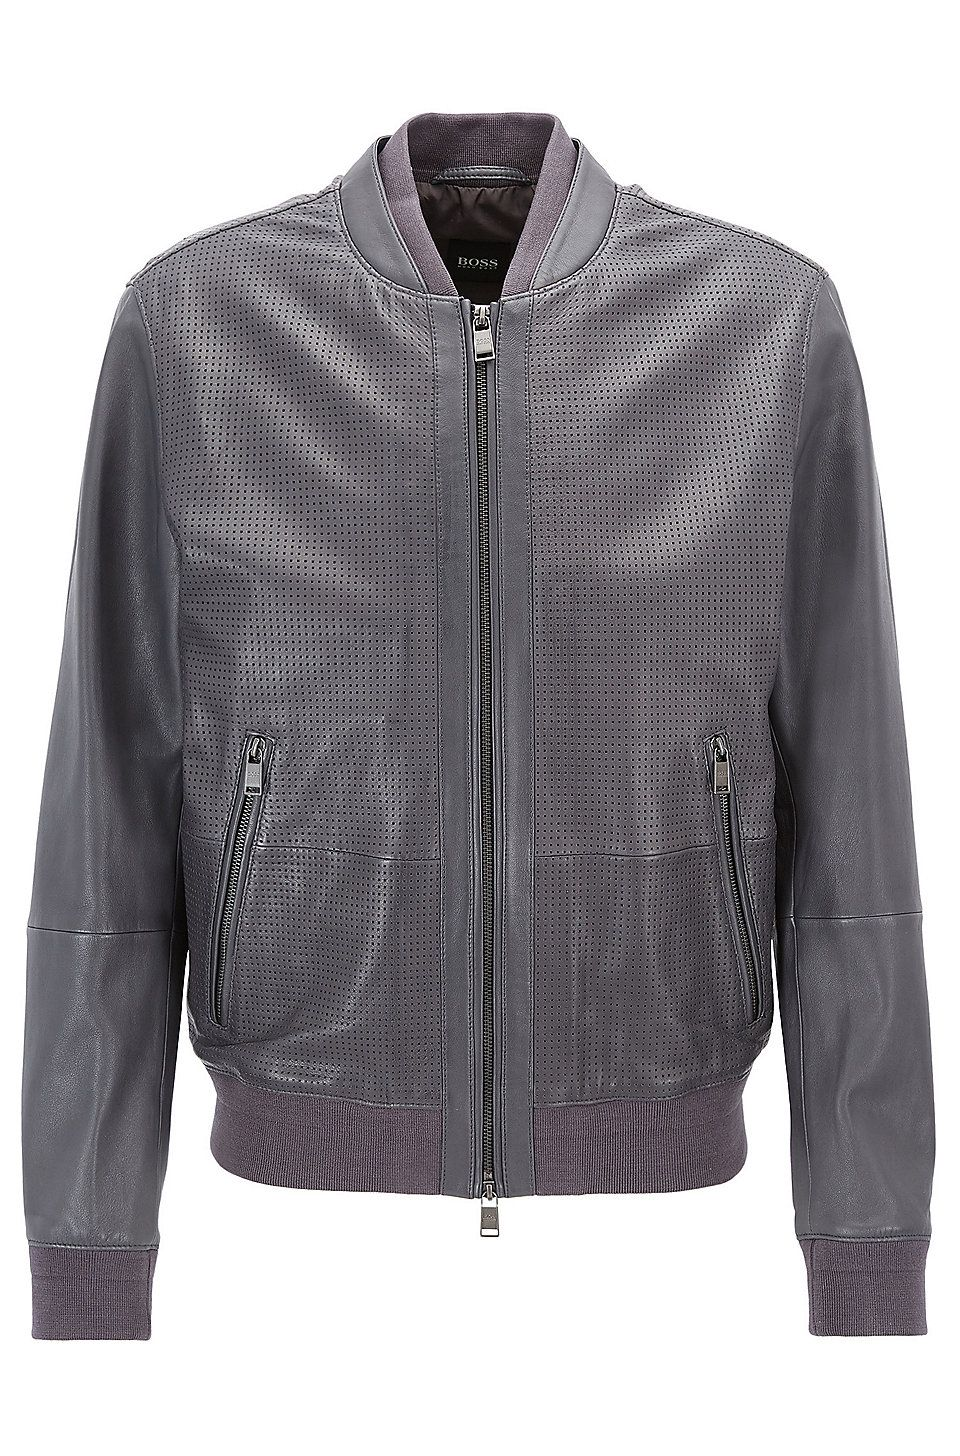 Hugo Boss Bomber Jacket In Perforated Leather Dark Grey Leather Jackets From Boss For Men In The Official Hugo Jackets Leather Jacket Men Grey Leather Jacket [ 1456 x 960 Pixel ]